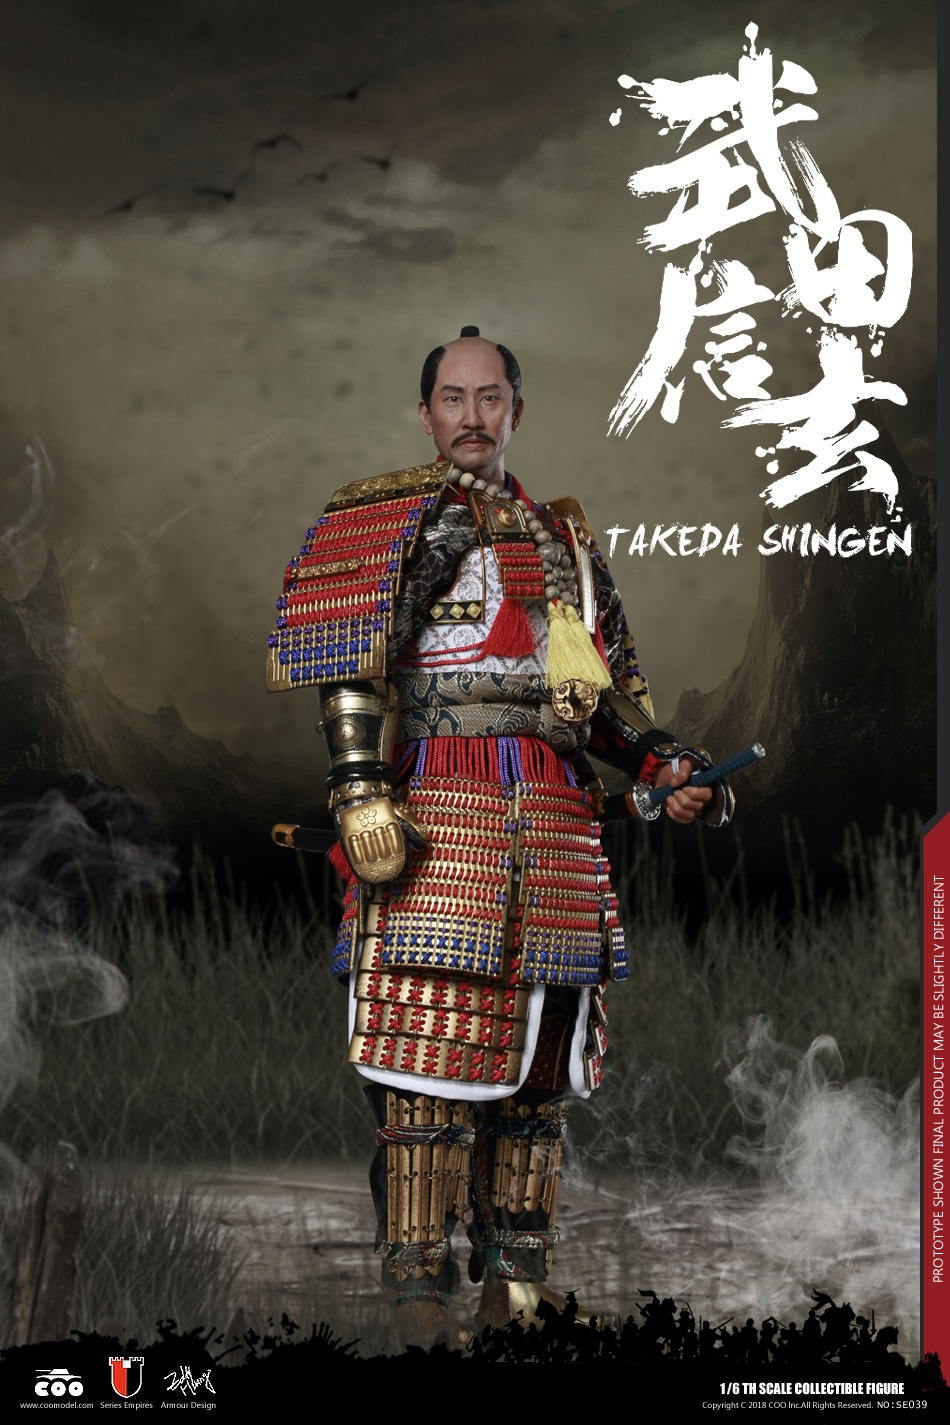 NEW PRODUCT: COOMODEL New: Empire Series Takeda Shingen 183756bqije0hnee6r4d0n